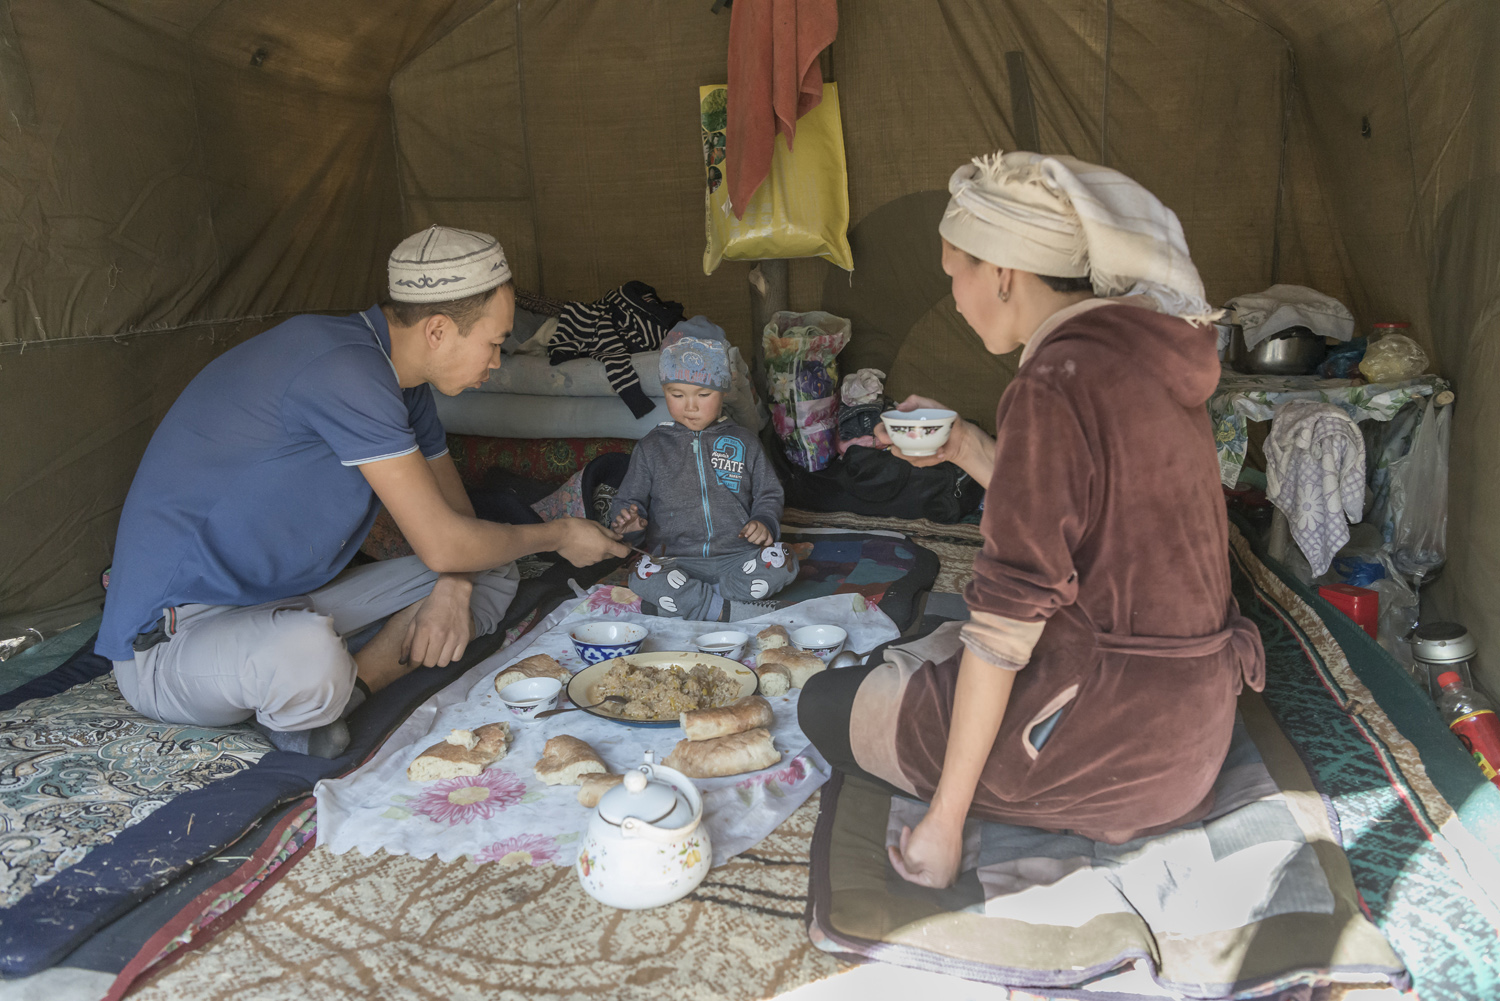 walnuts-picking-kyrgyzstan-child-arslanbob-soviet-union-russia-picnic-camping-family.jpg